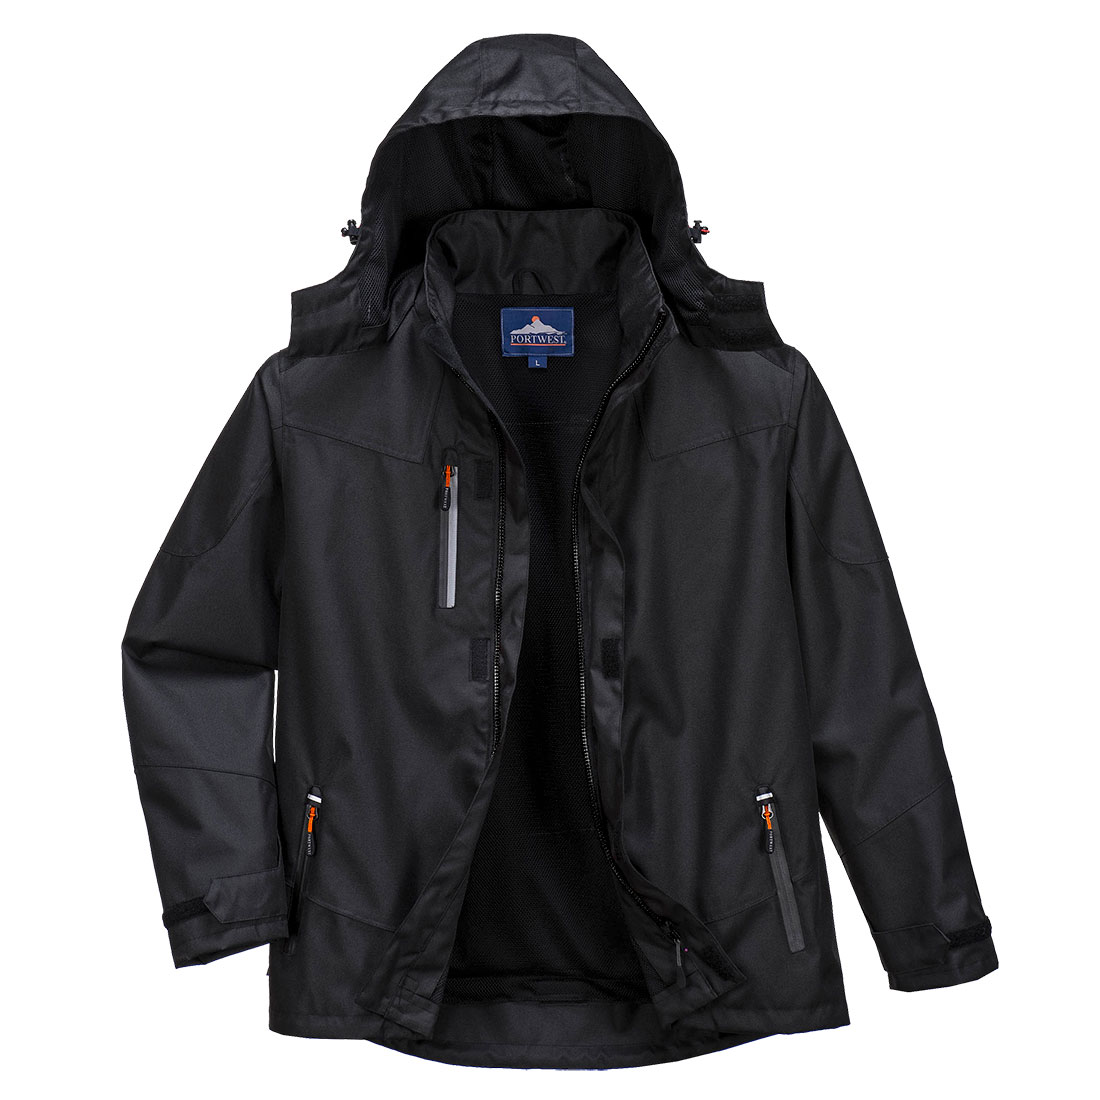 Portwest Outcoach Jacket